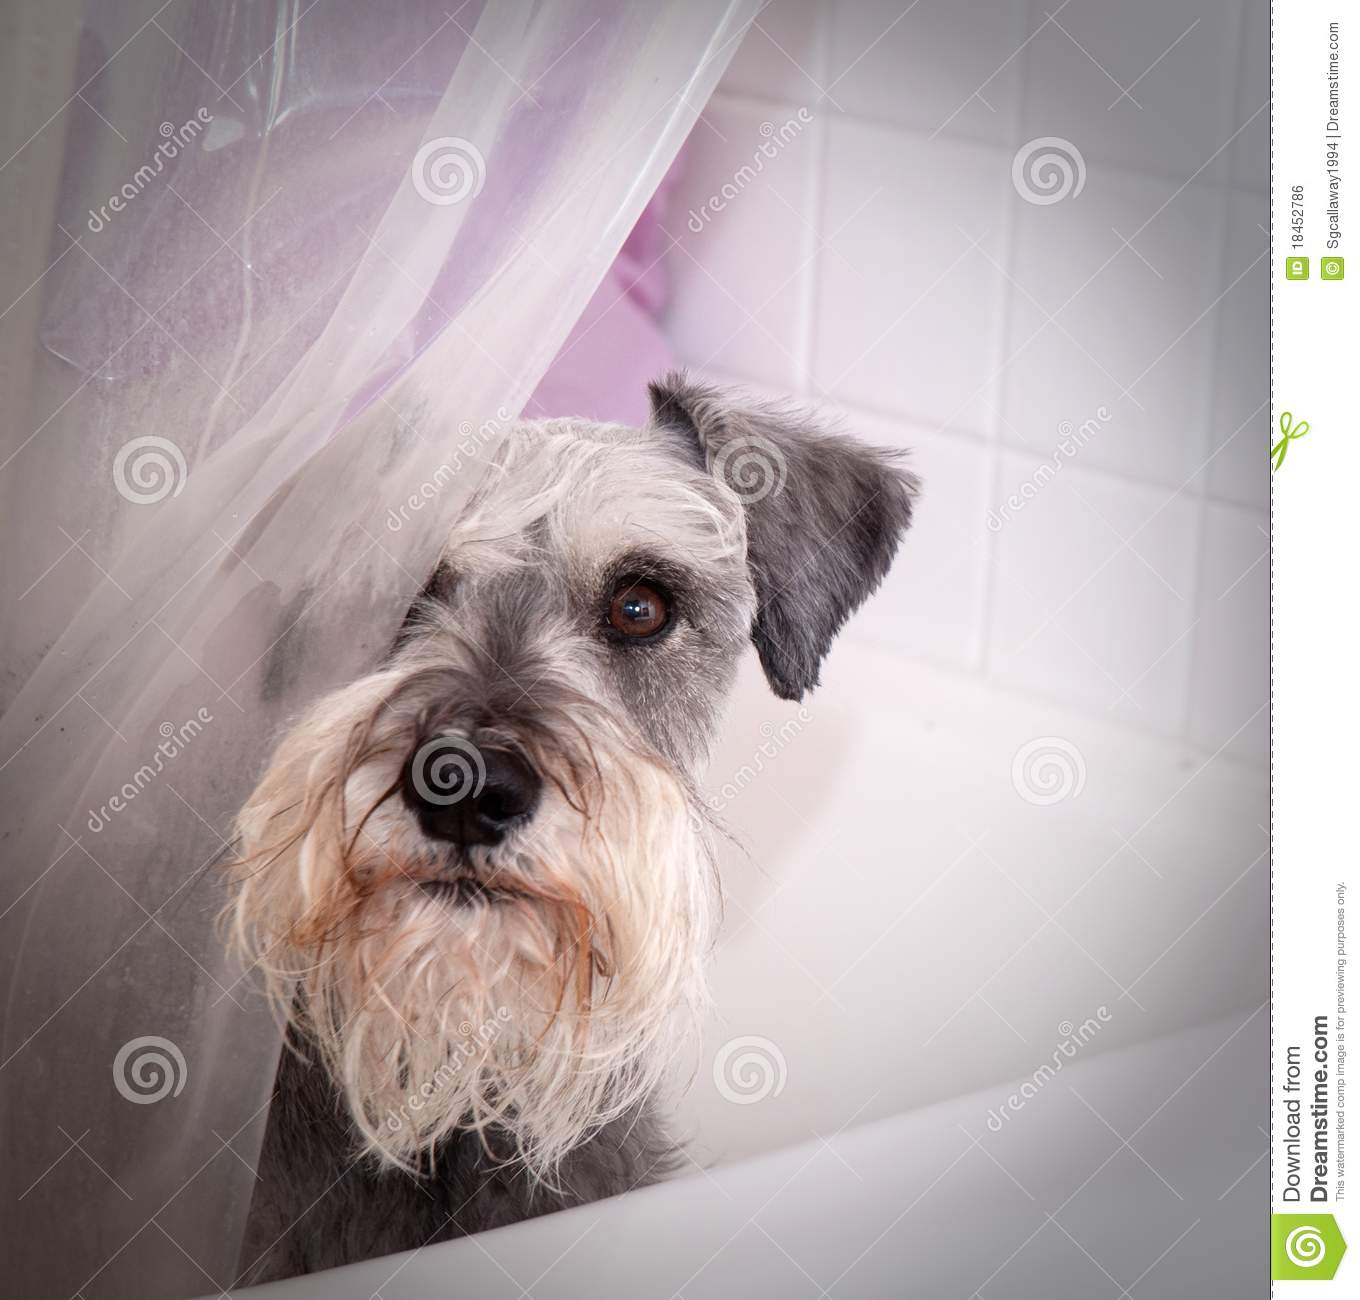 Small Gray Dog In Bath Tub Stock Photo Image Of Inside